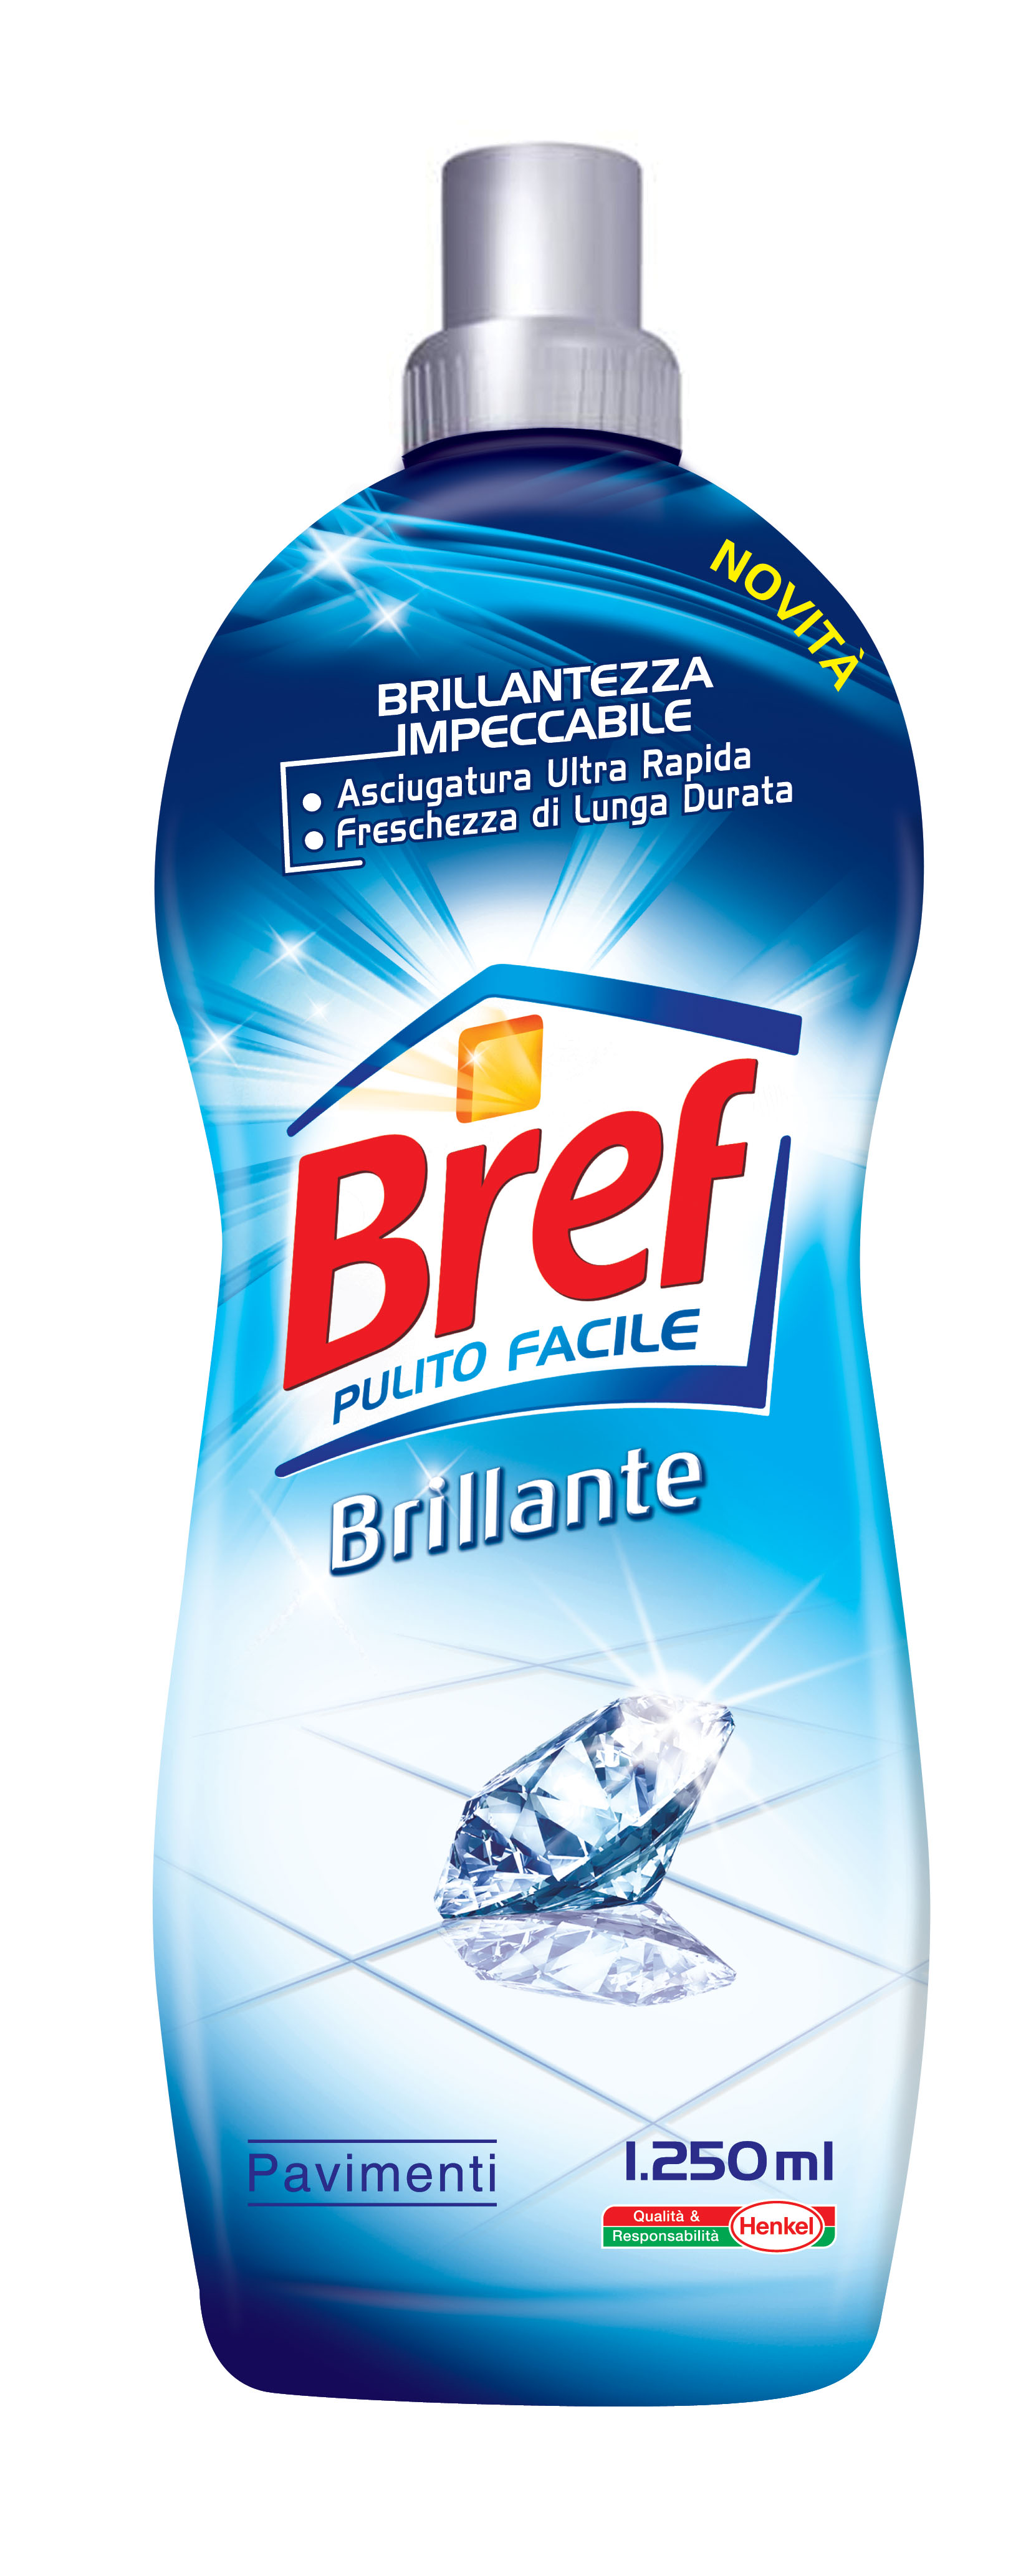 Bref brillante